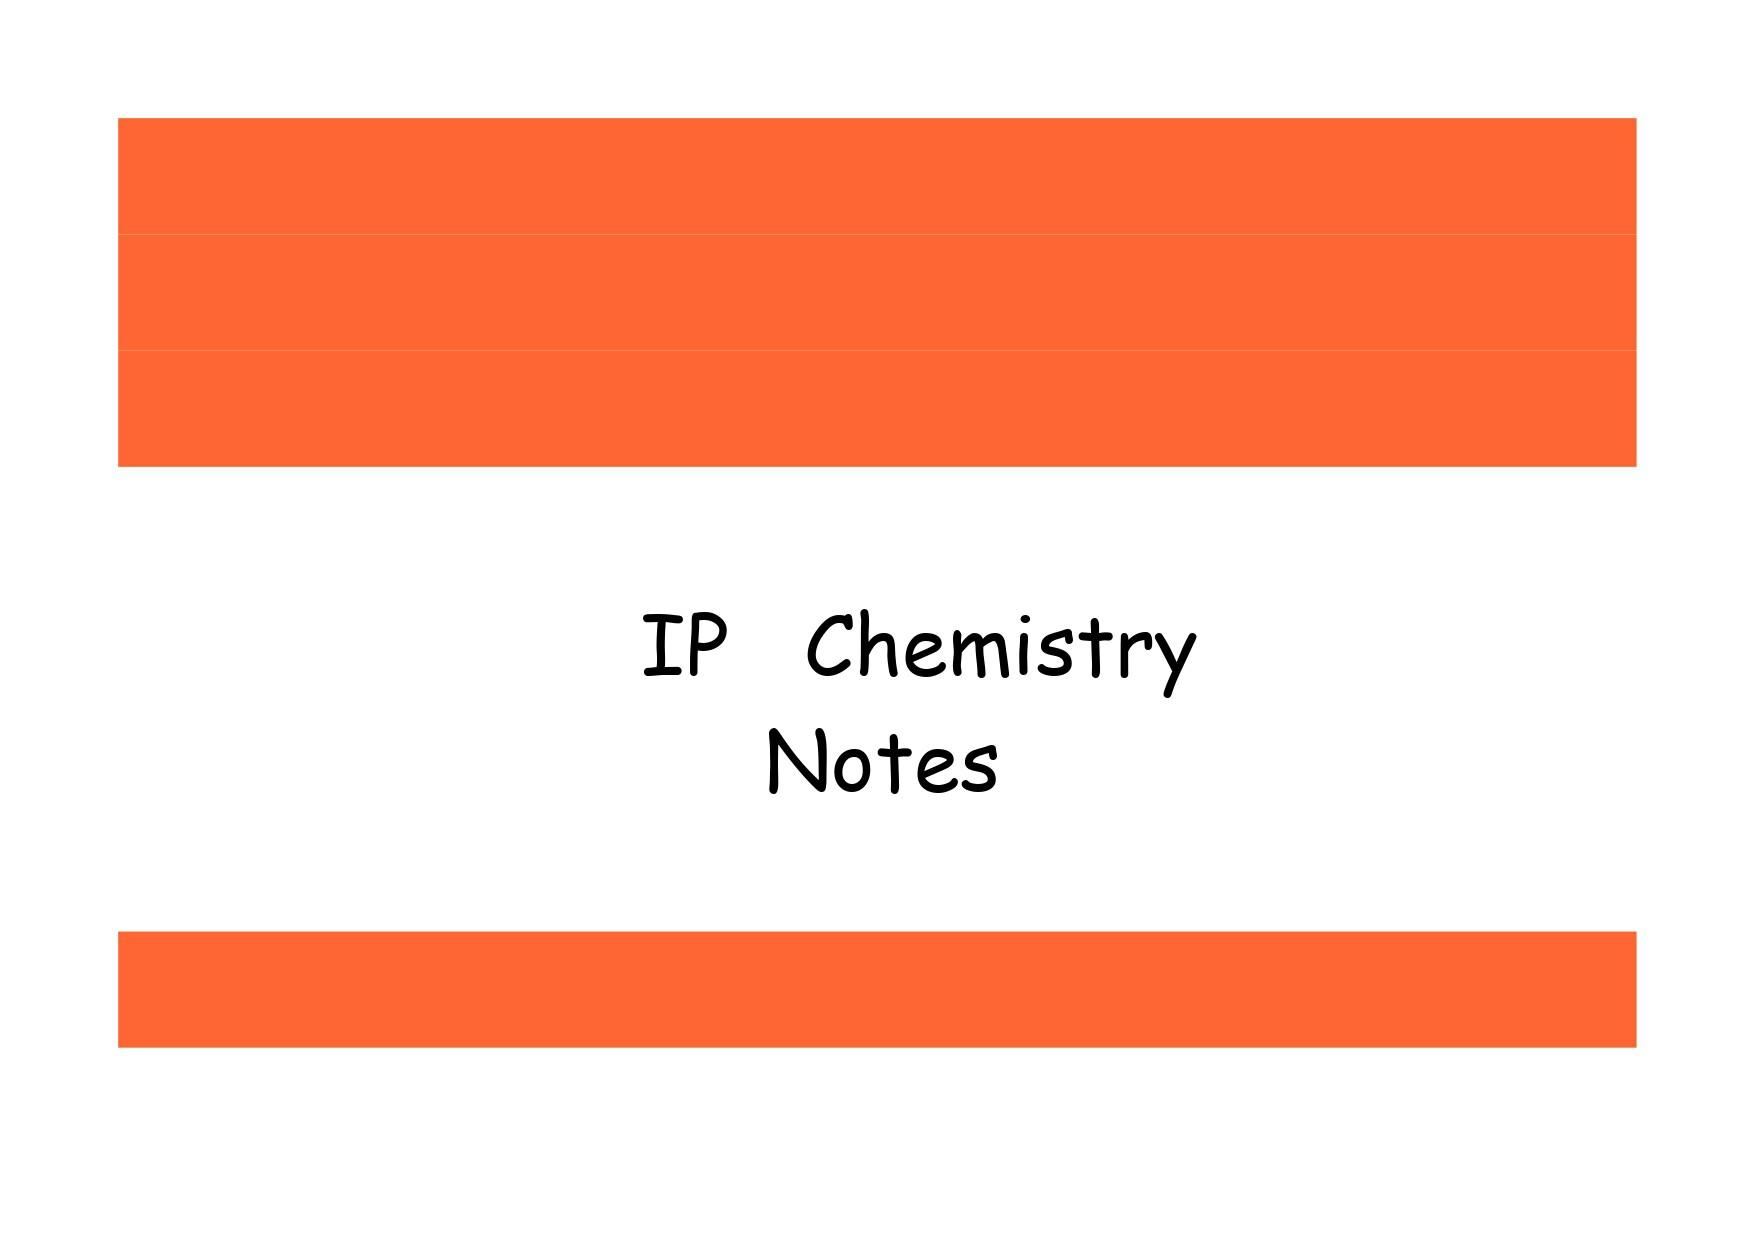 IP Chemistry Notes